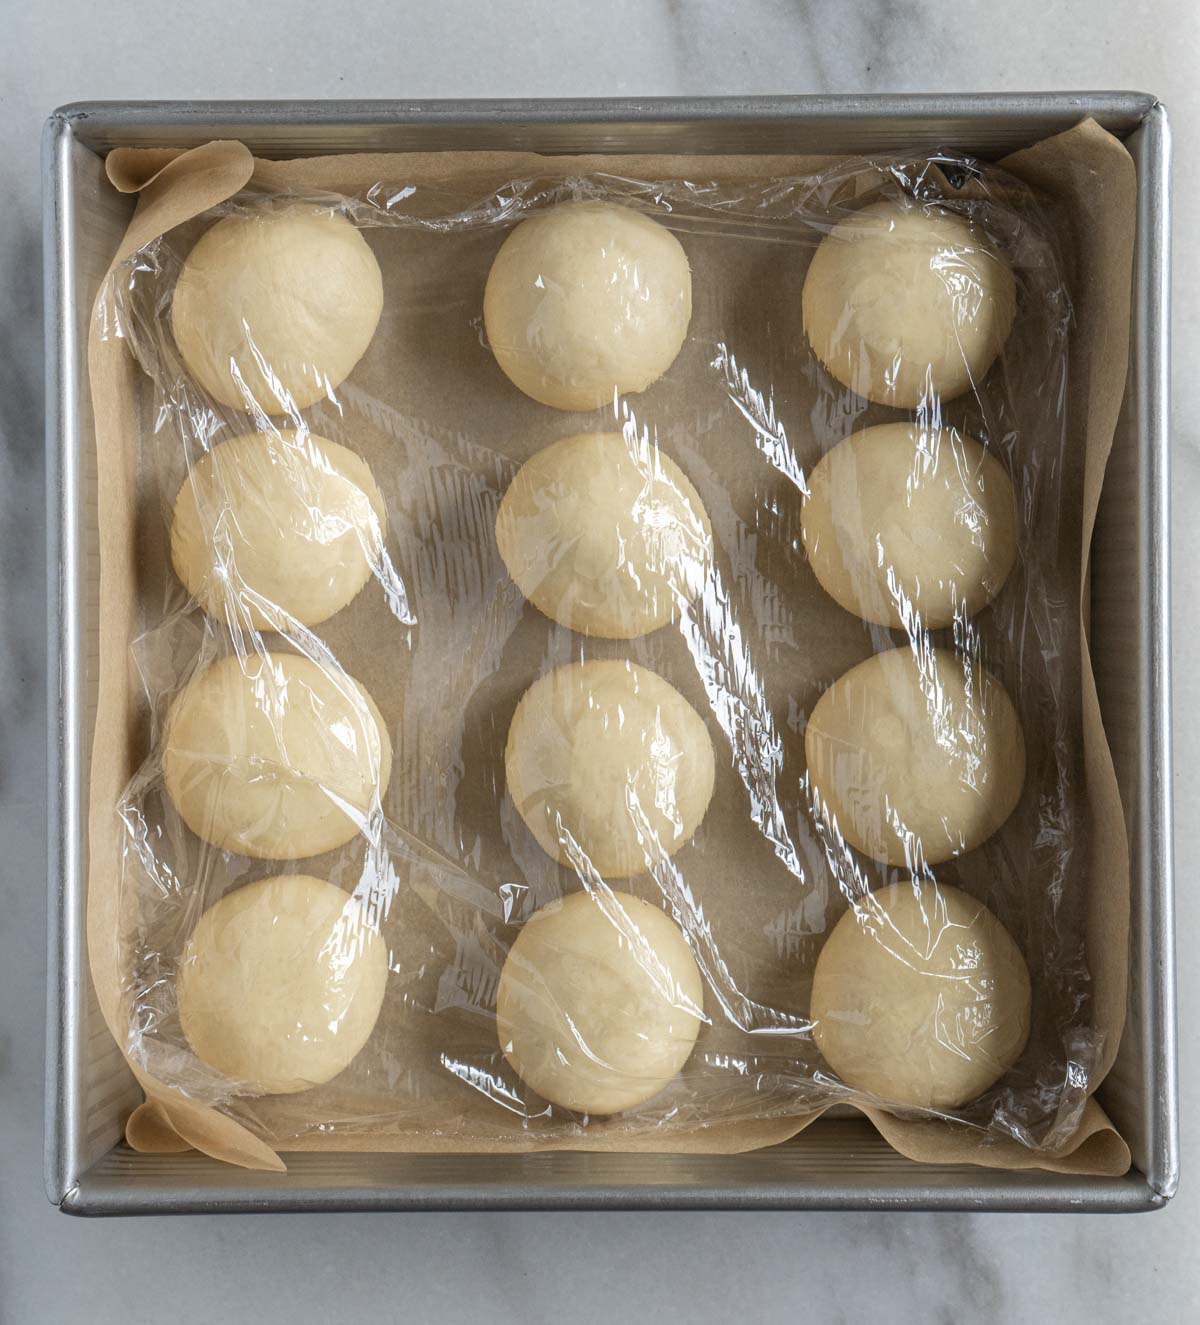 milk bun dough covered with plastic wrap before second proof.